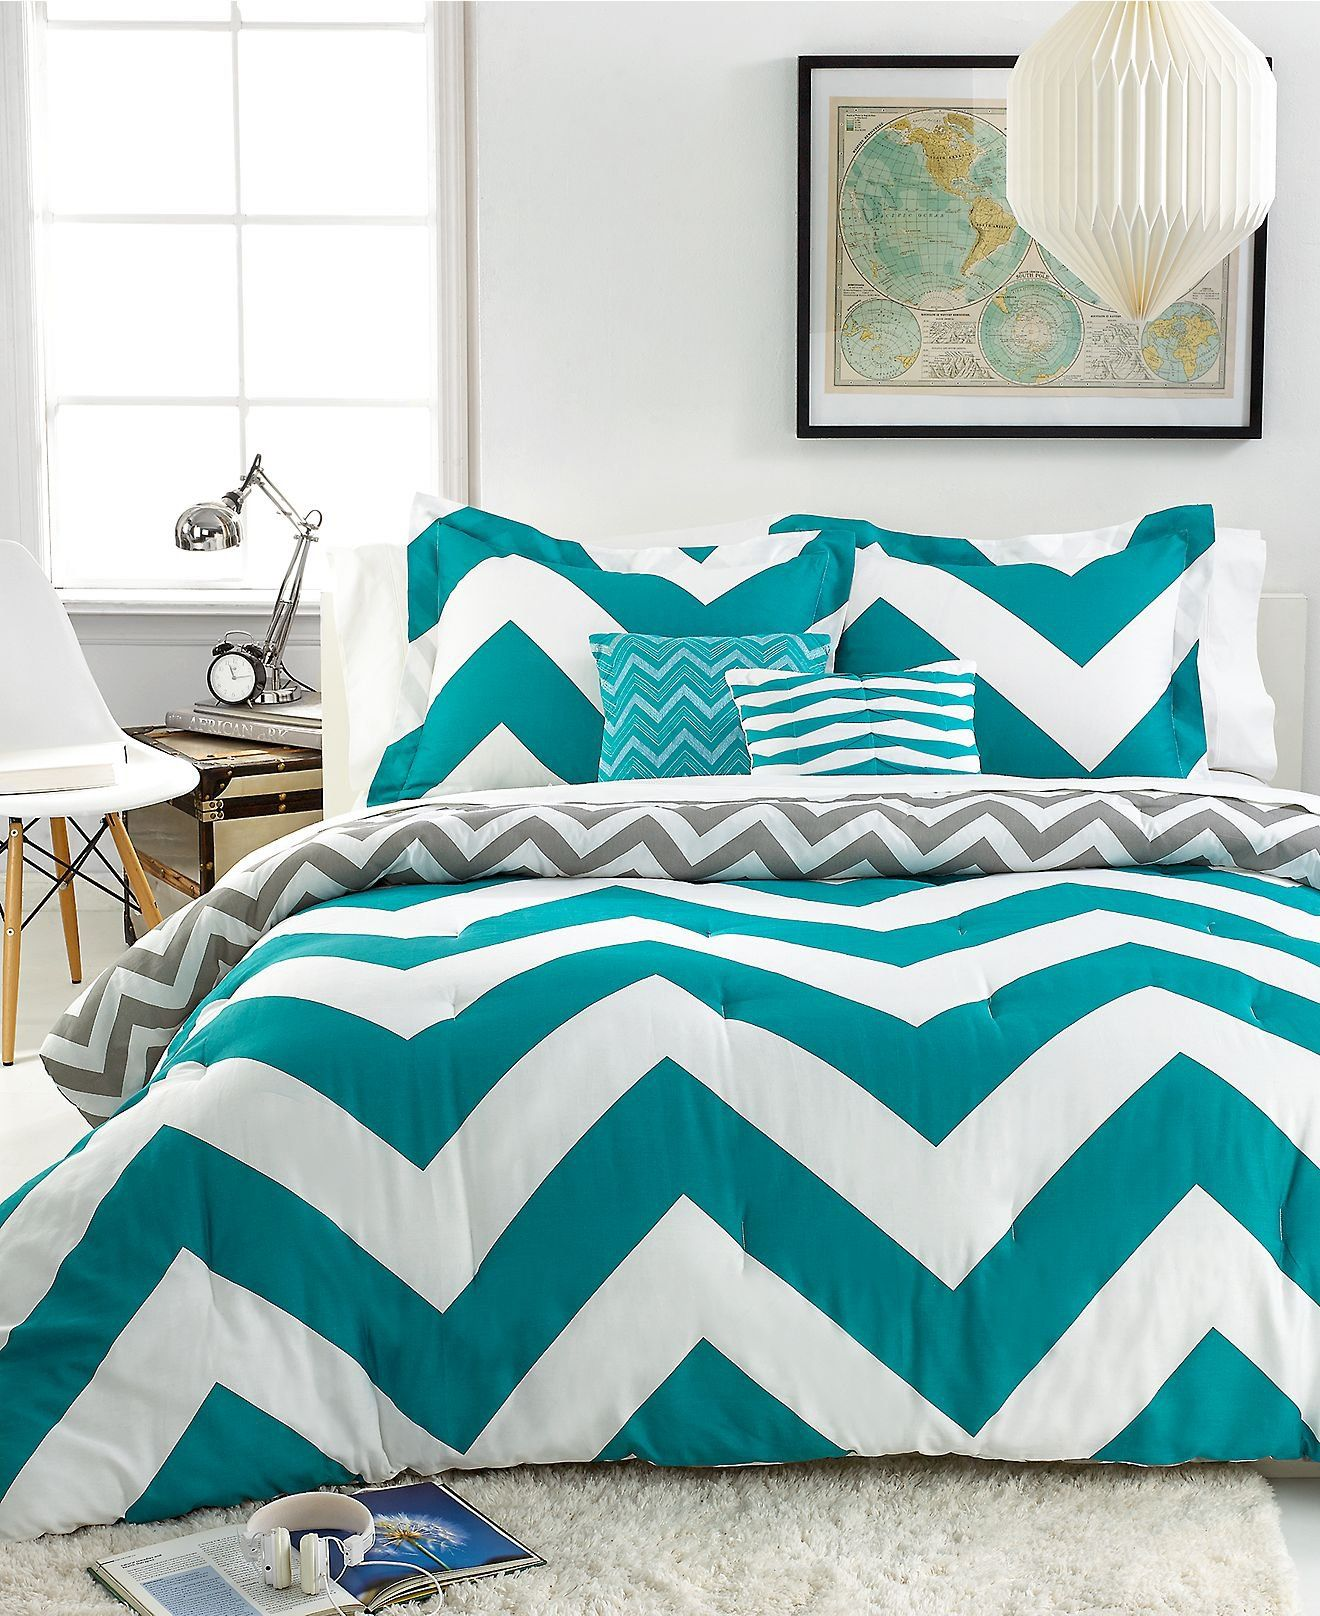 Teal chevron bedspread and other bedroom decorations